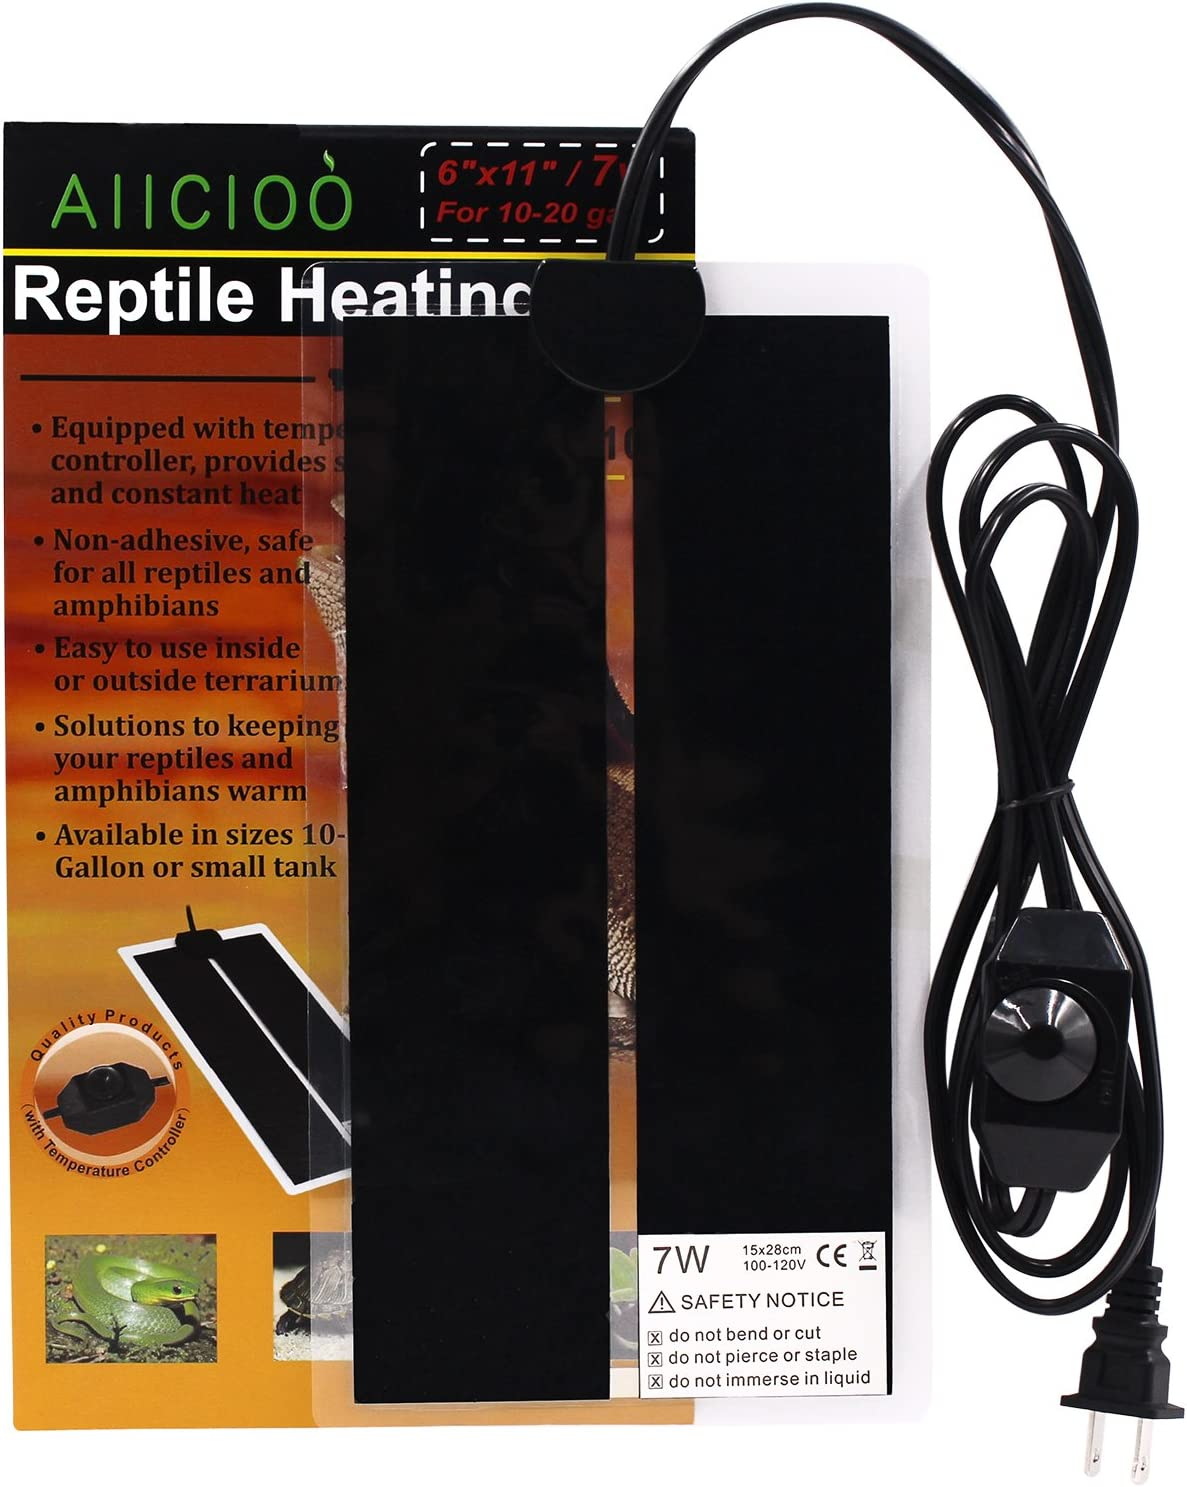 Reptile Heating Pad - 7W Terrarium Heating Pad Warmer With Temperature Control Aiicioo Electric Heating Pad For Reptile